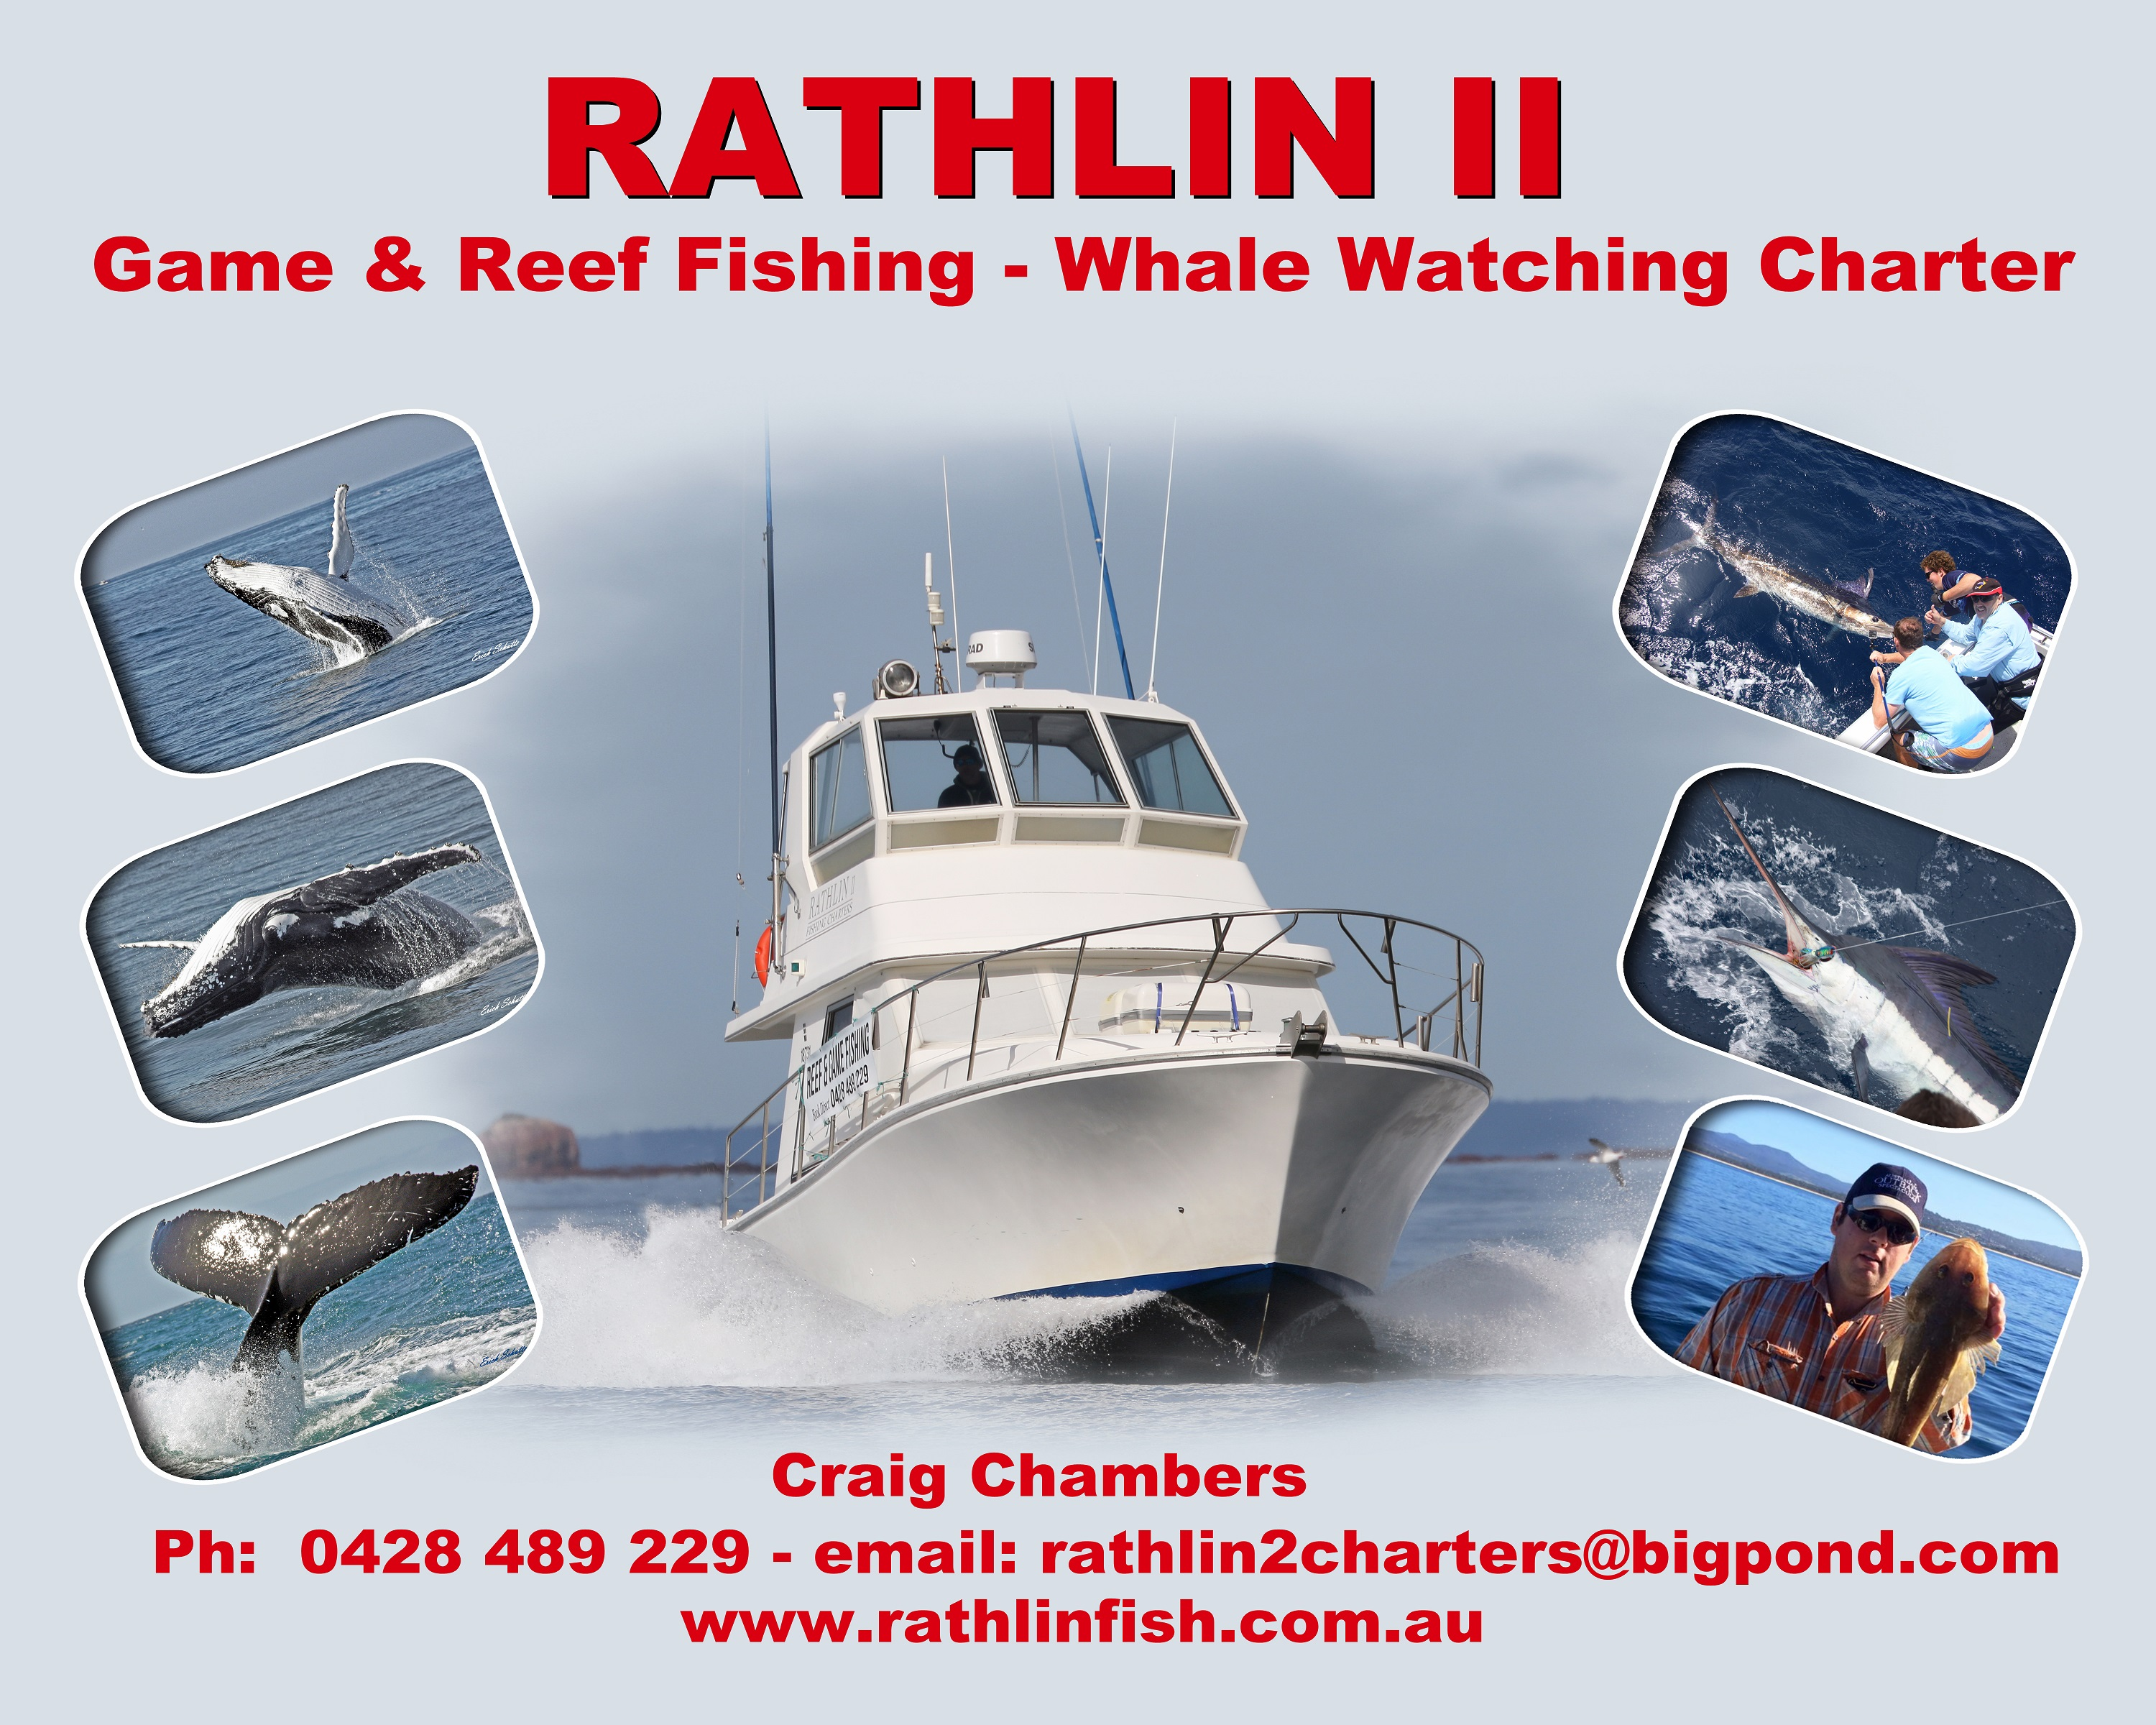 Rathlin II Game fishing Reef fishing whale watching charter Merimbula Sapphire Coast NSW